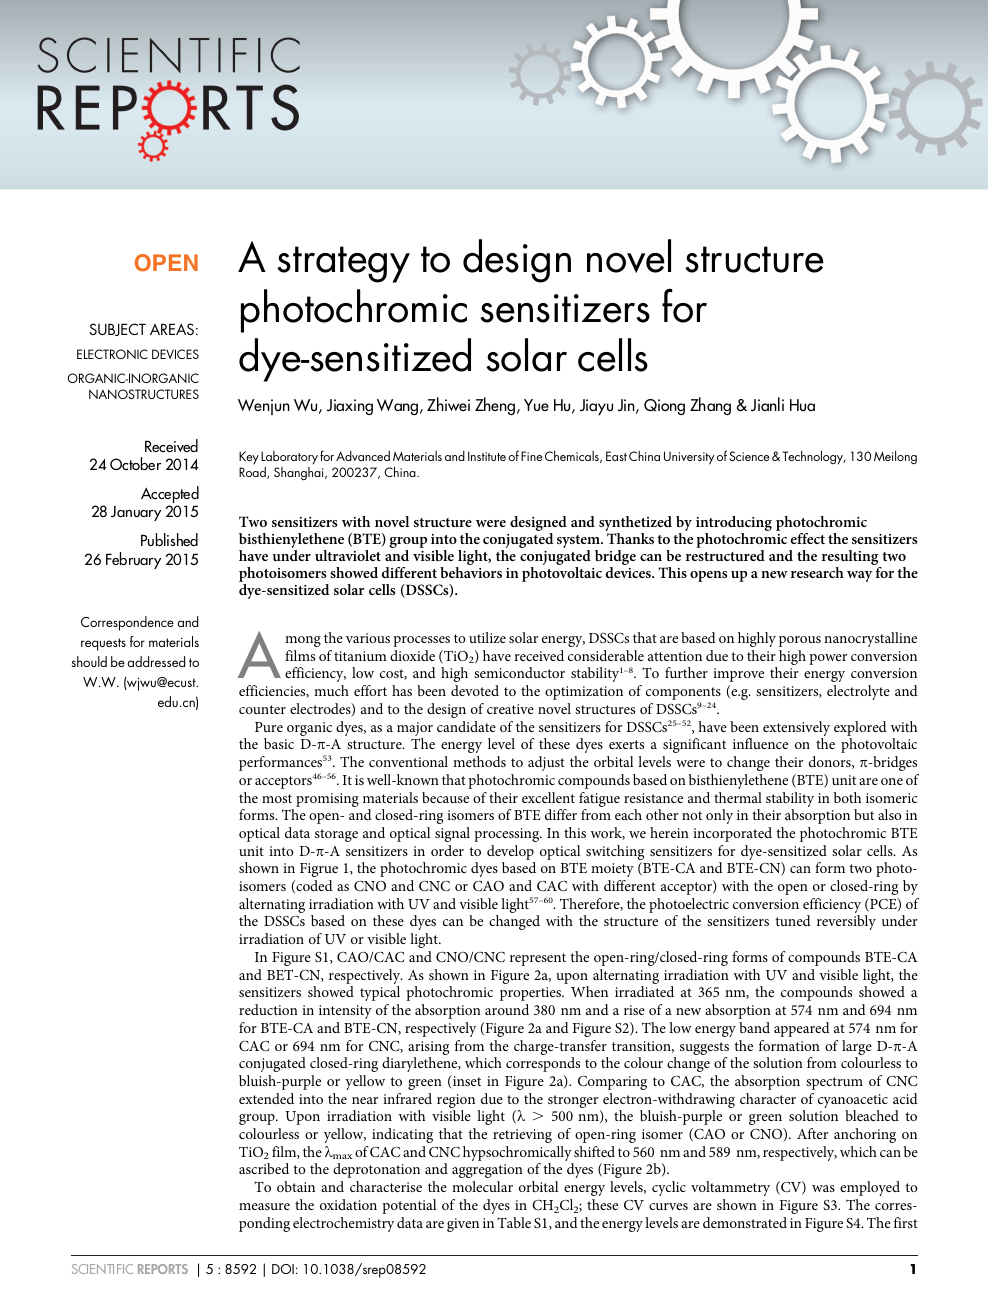 A strategy to design novel structure photochromic sensitizers for